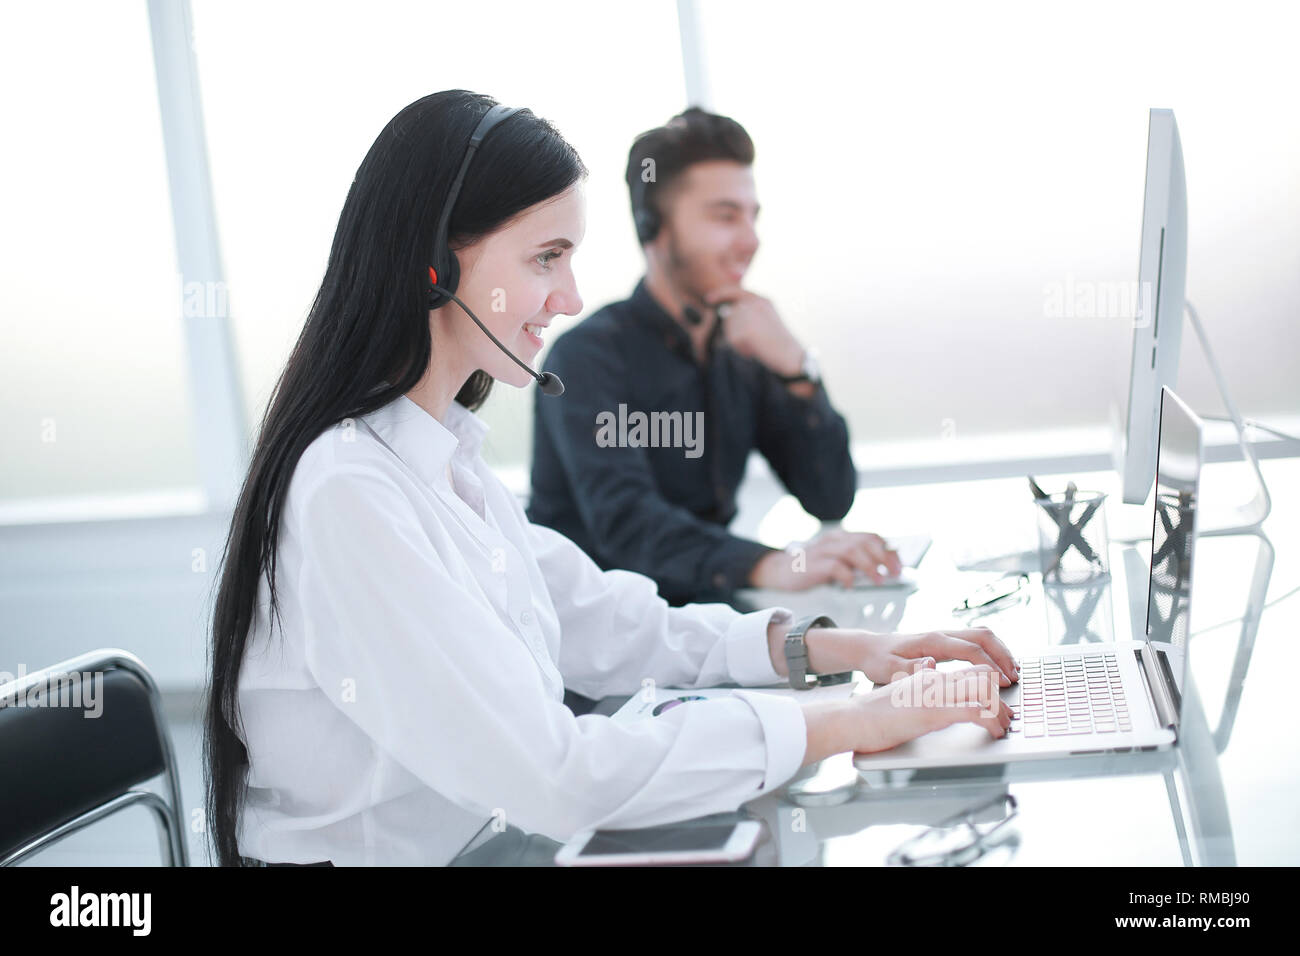 agent, customer service, working at the call center Stock Photo